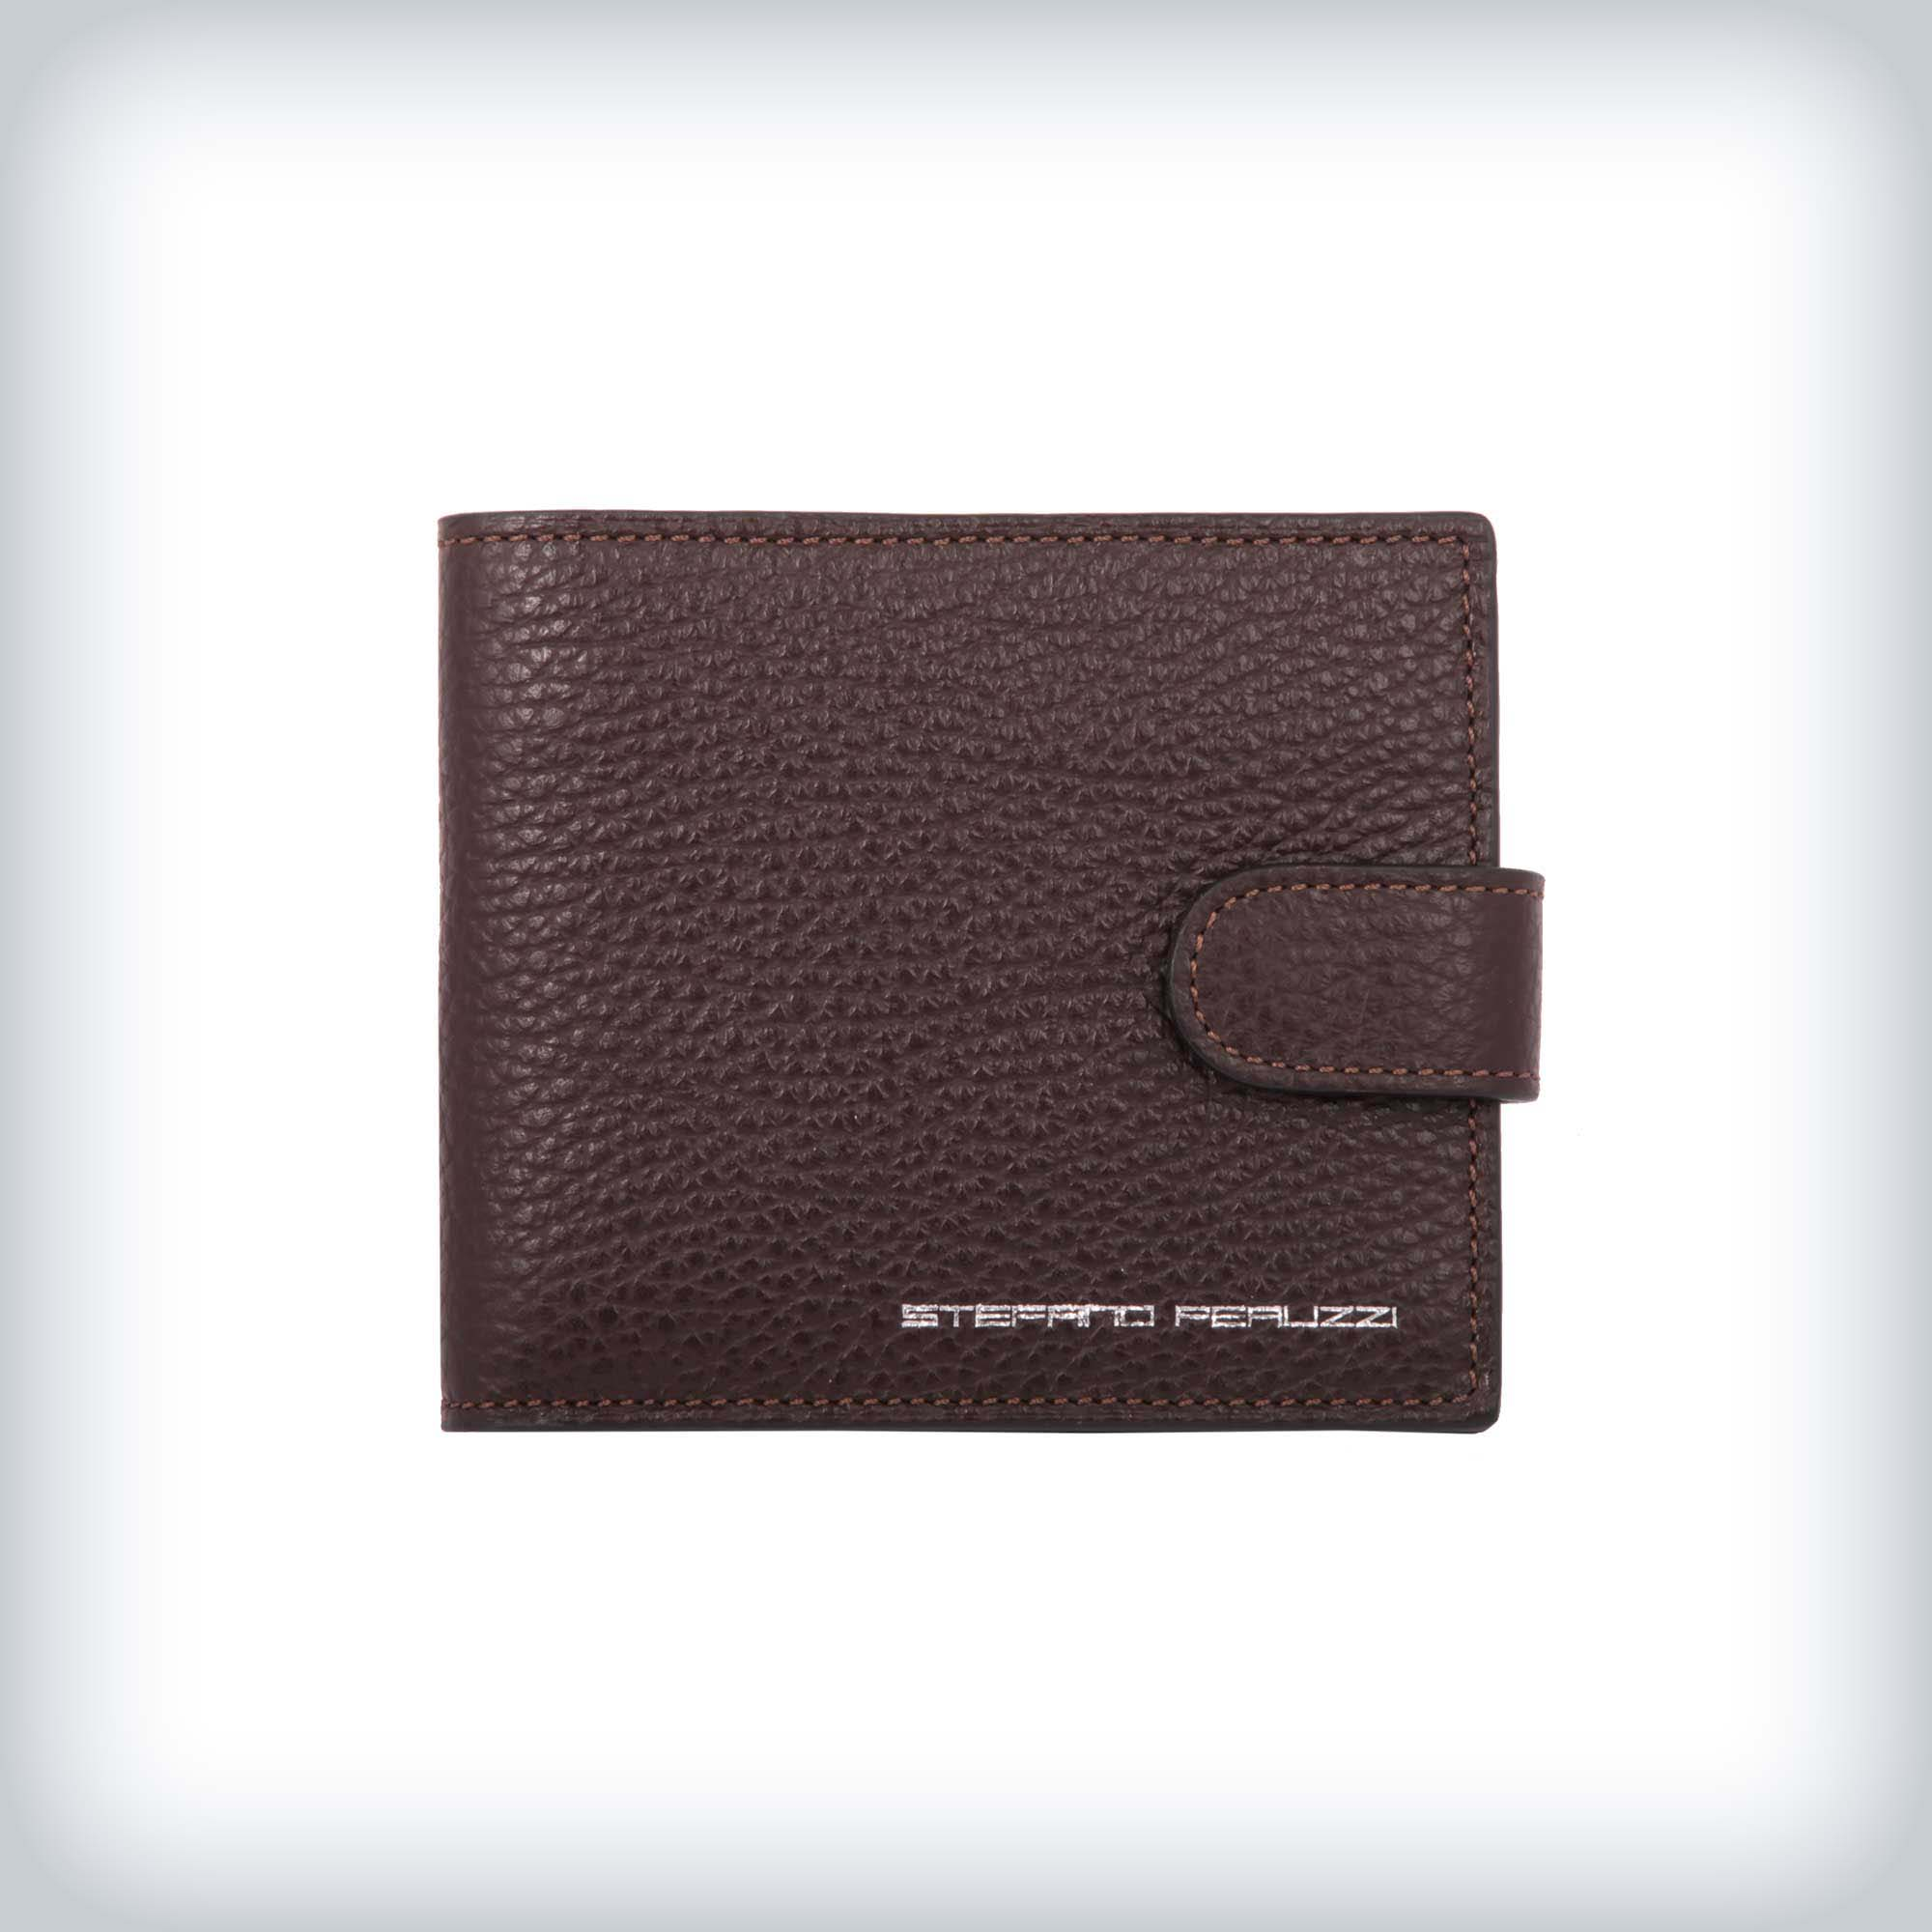 "Deerskin leather wallet ""Stefano Peruzzi"""